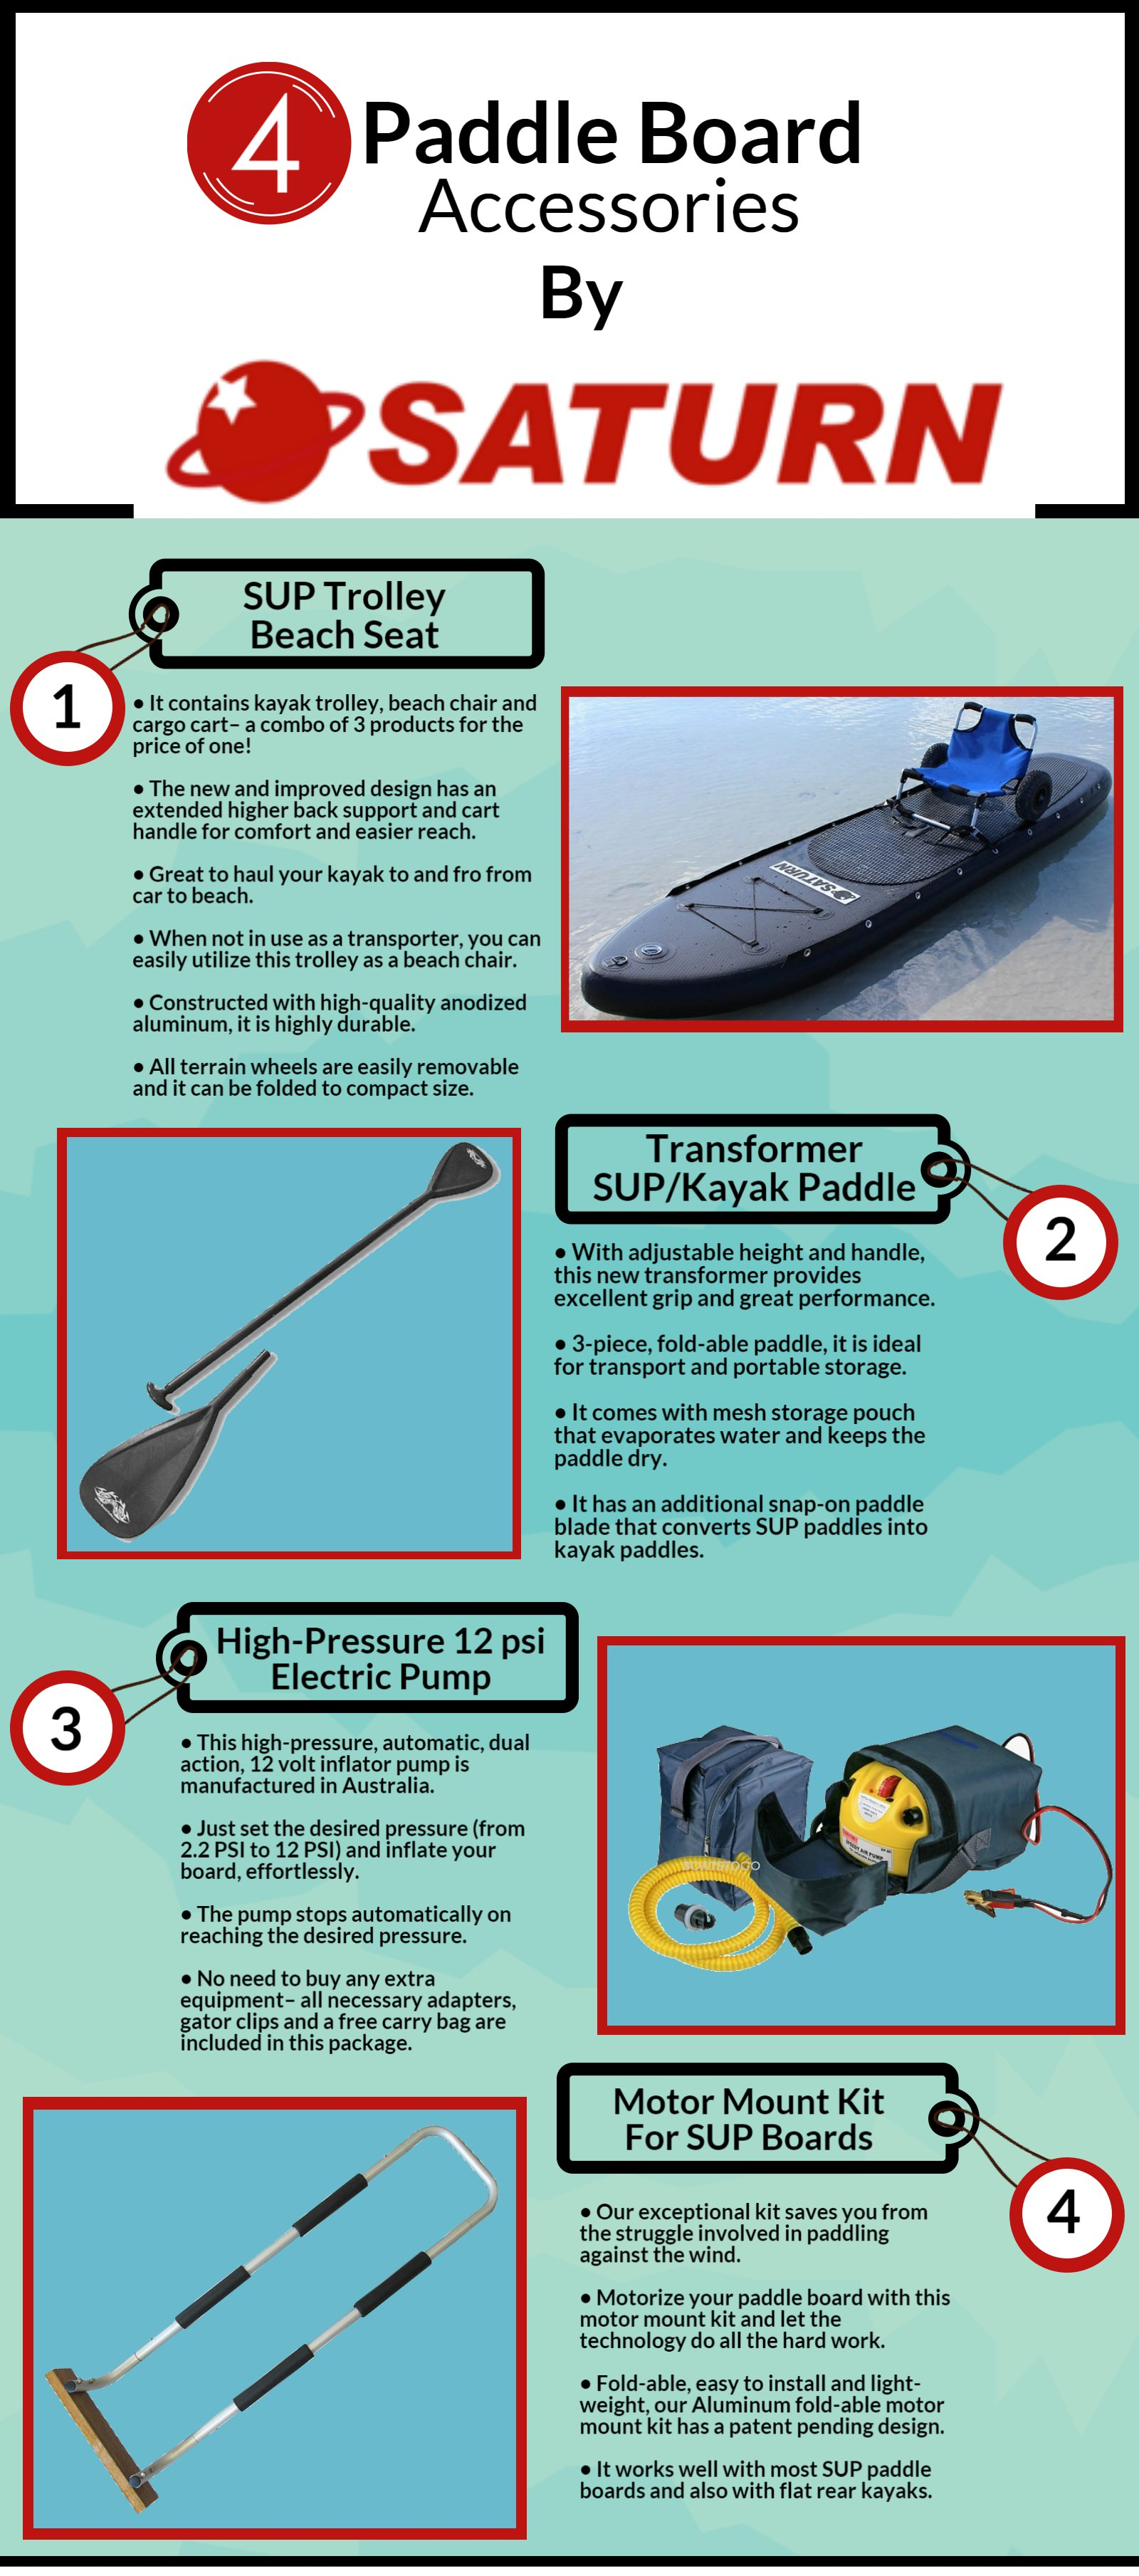 Accessories for Inflatable Paddle Boards from Saturn